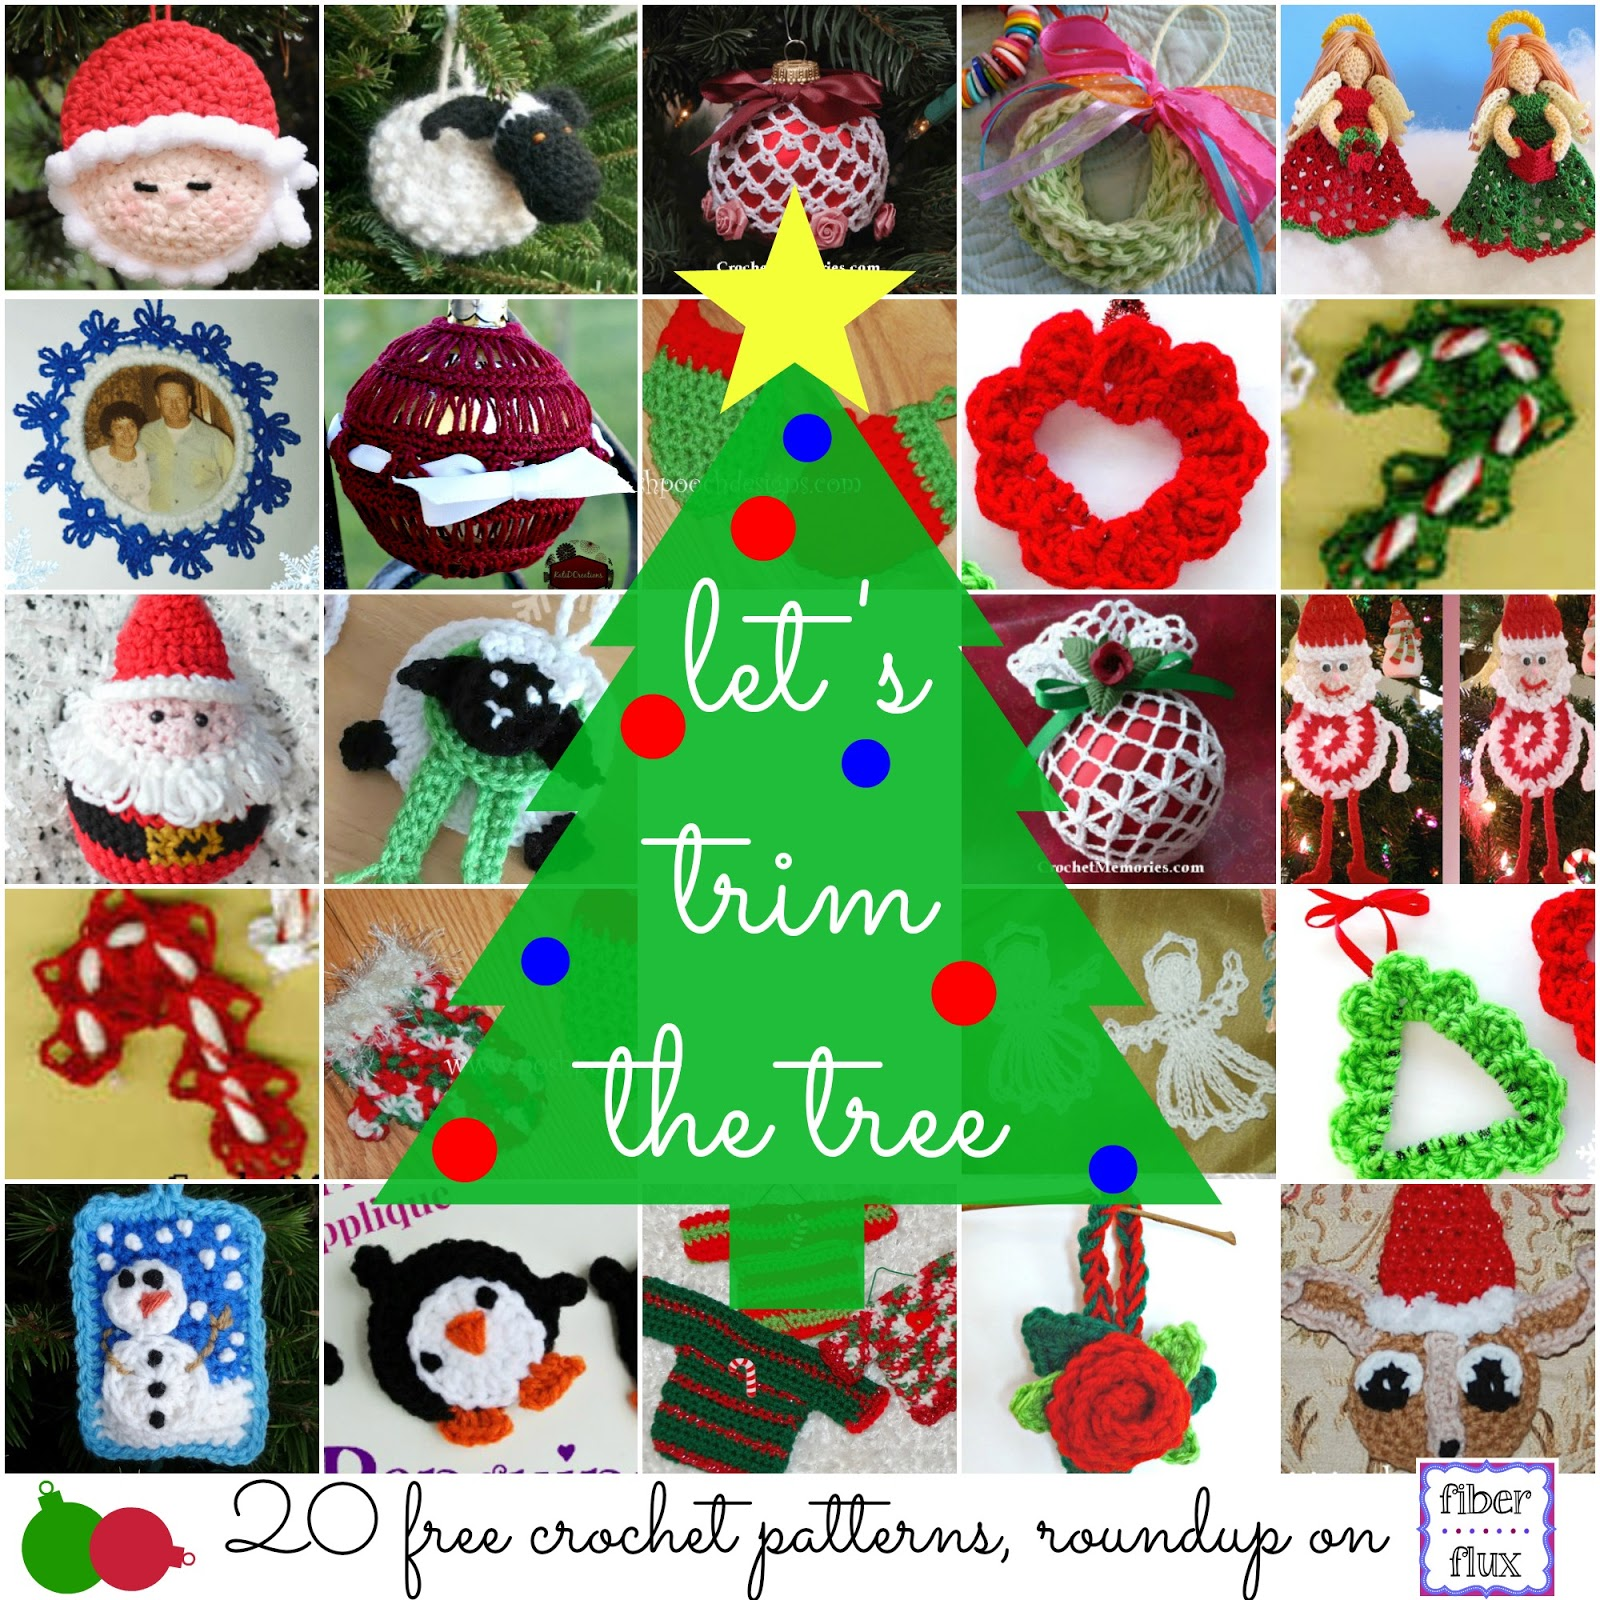 Free crochet christmas tree ornament patterns - Let S Trim The Tree 20 Free Crochet Ornament Patterns